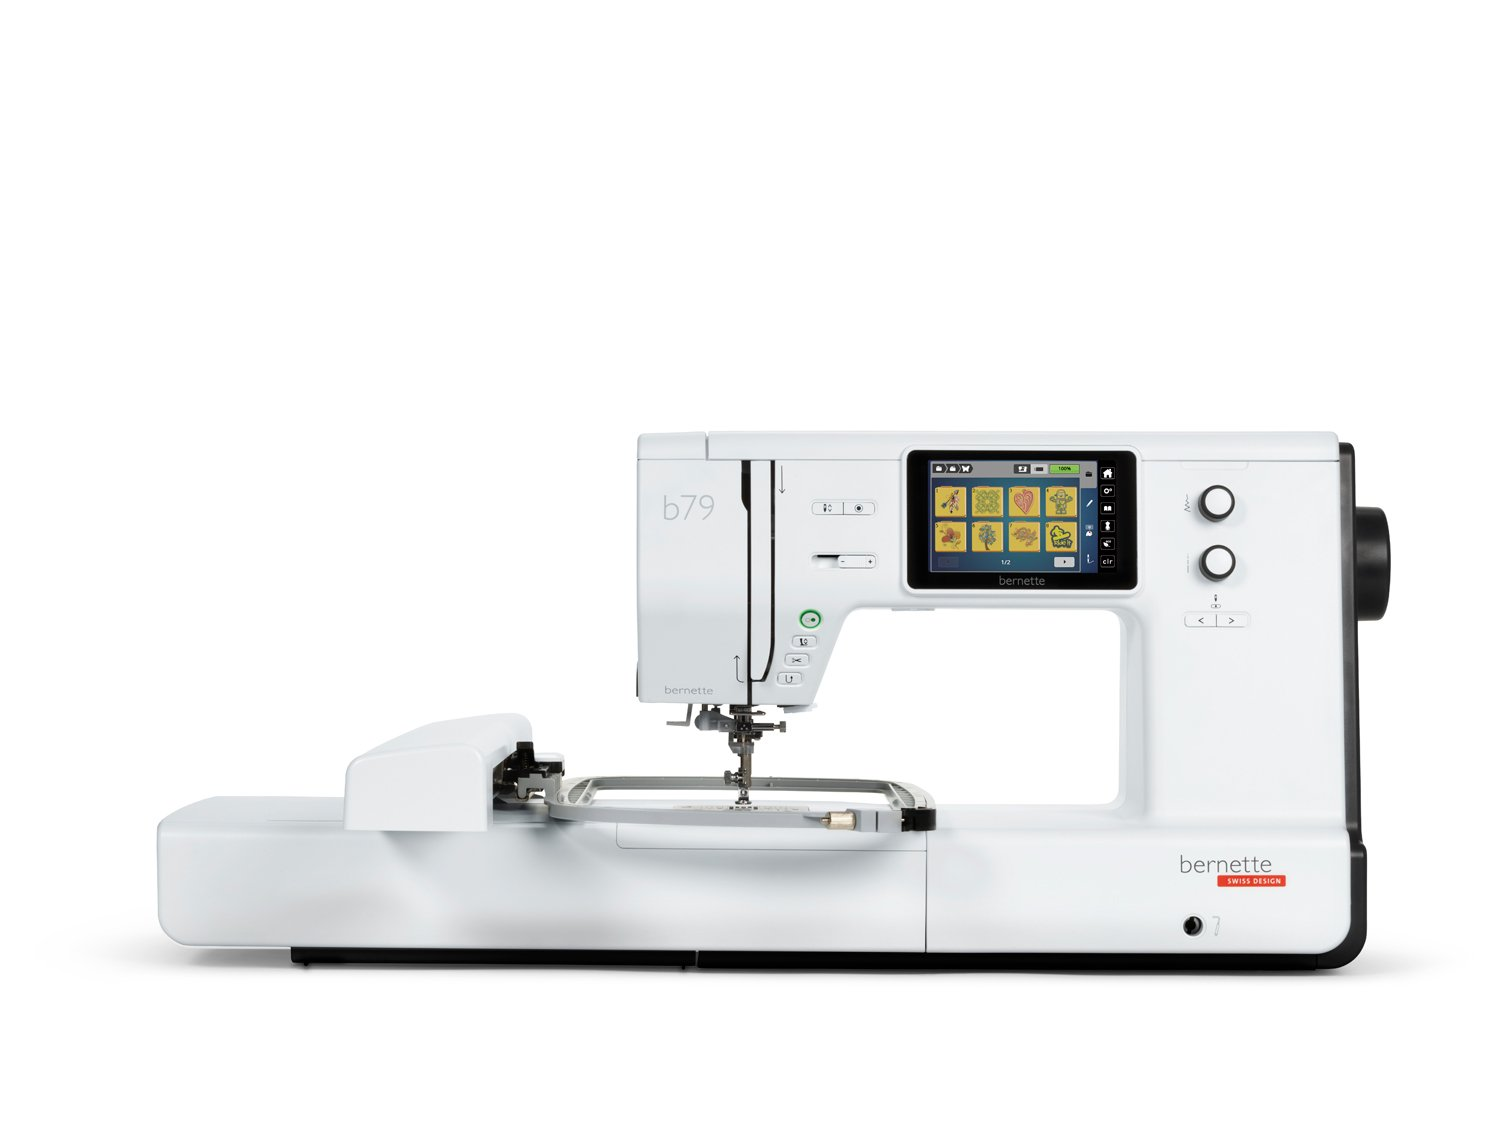 Bernette b-79 sewing and embroidery machine